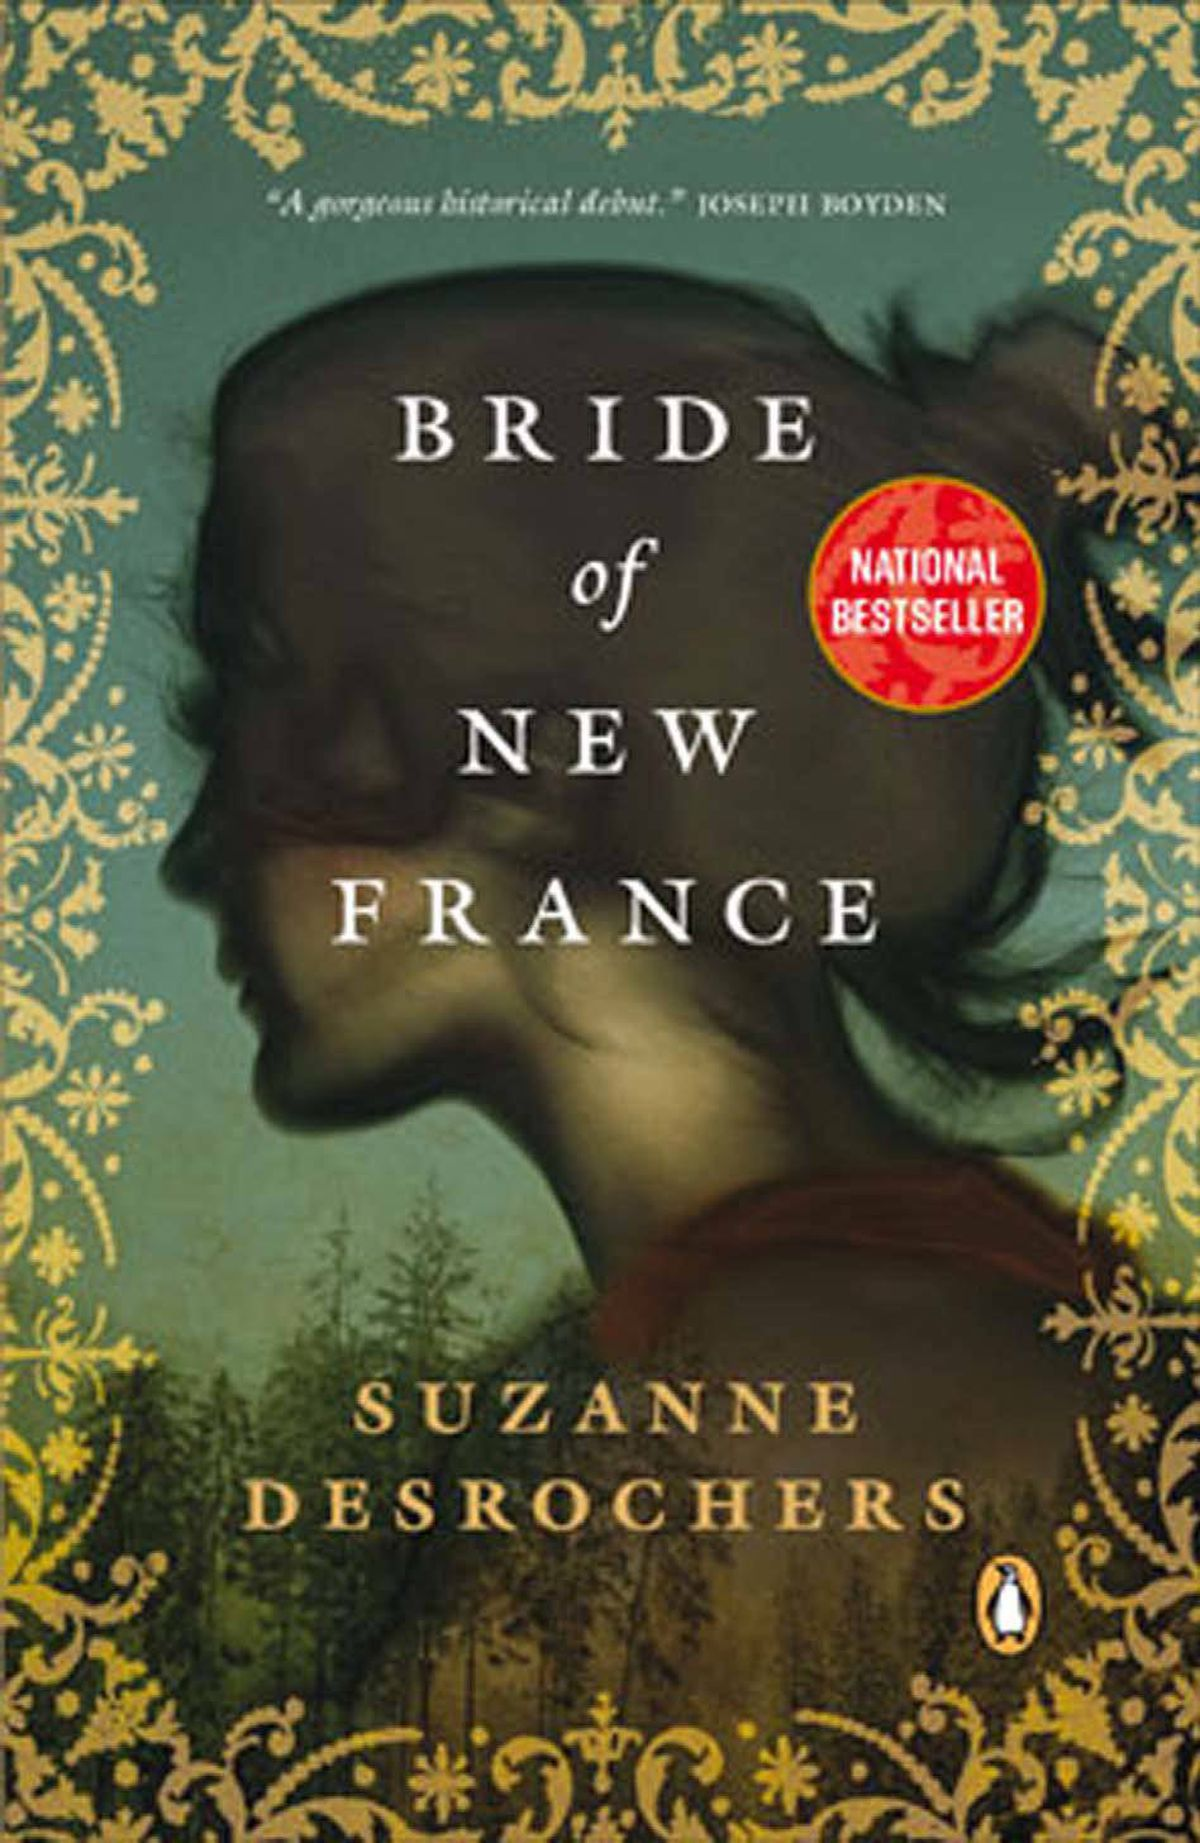 BRIDE OF NEW FRANCE By Suzanne Desrochers (Penguin Canada) A wholly original example of social history at its best. Desrochers, a trained historian, has boldly appropriated fiction to expand a vision gleaned from study of often overlooked evidence about the filles du roi, women exported by royal decree into the faltering, almost wholly male colony in the late 17th century to serve as breeding stock. – John Barber